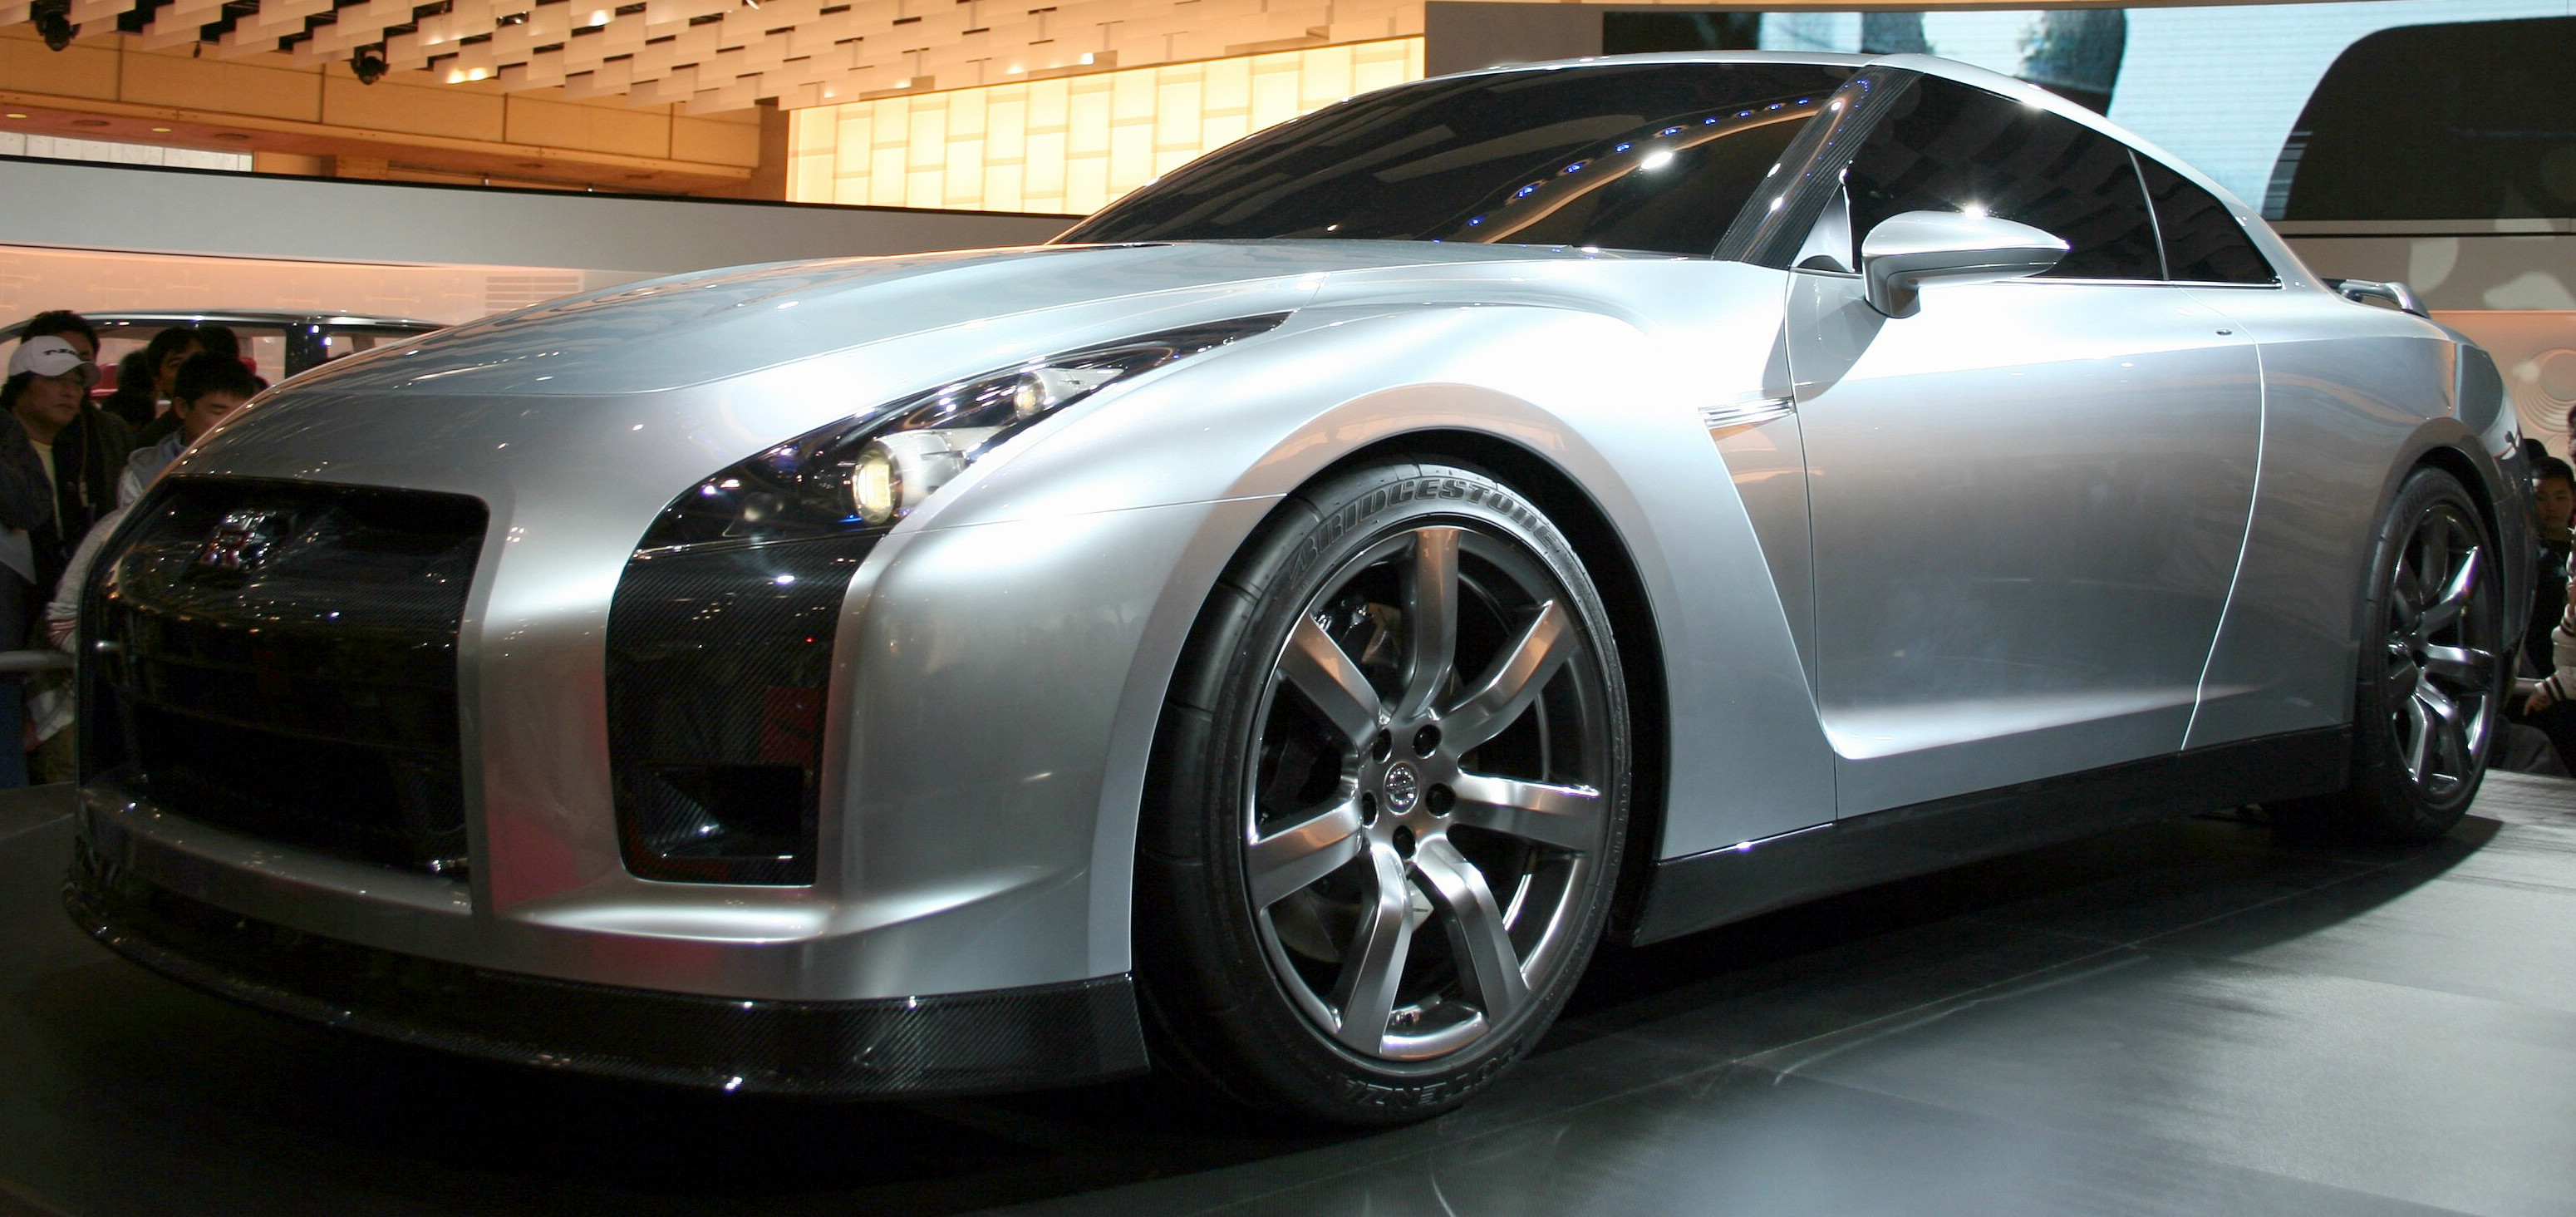 nissan gtr 2006 review amazing pictures and images. Black Bedroom Furniture Sets. Home Design Ideas